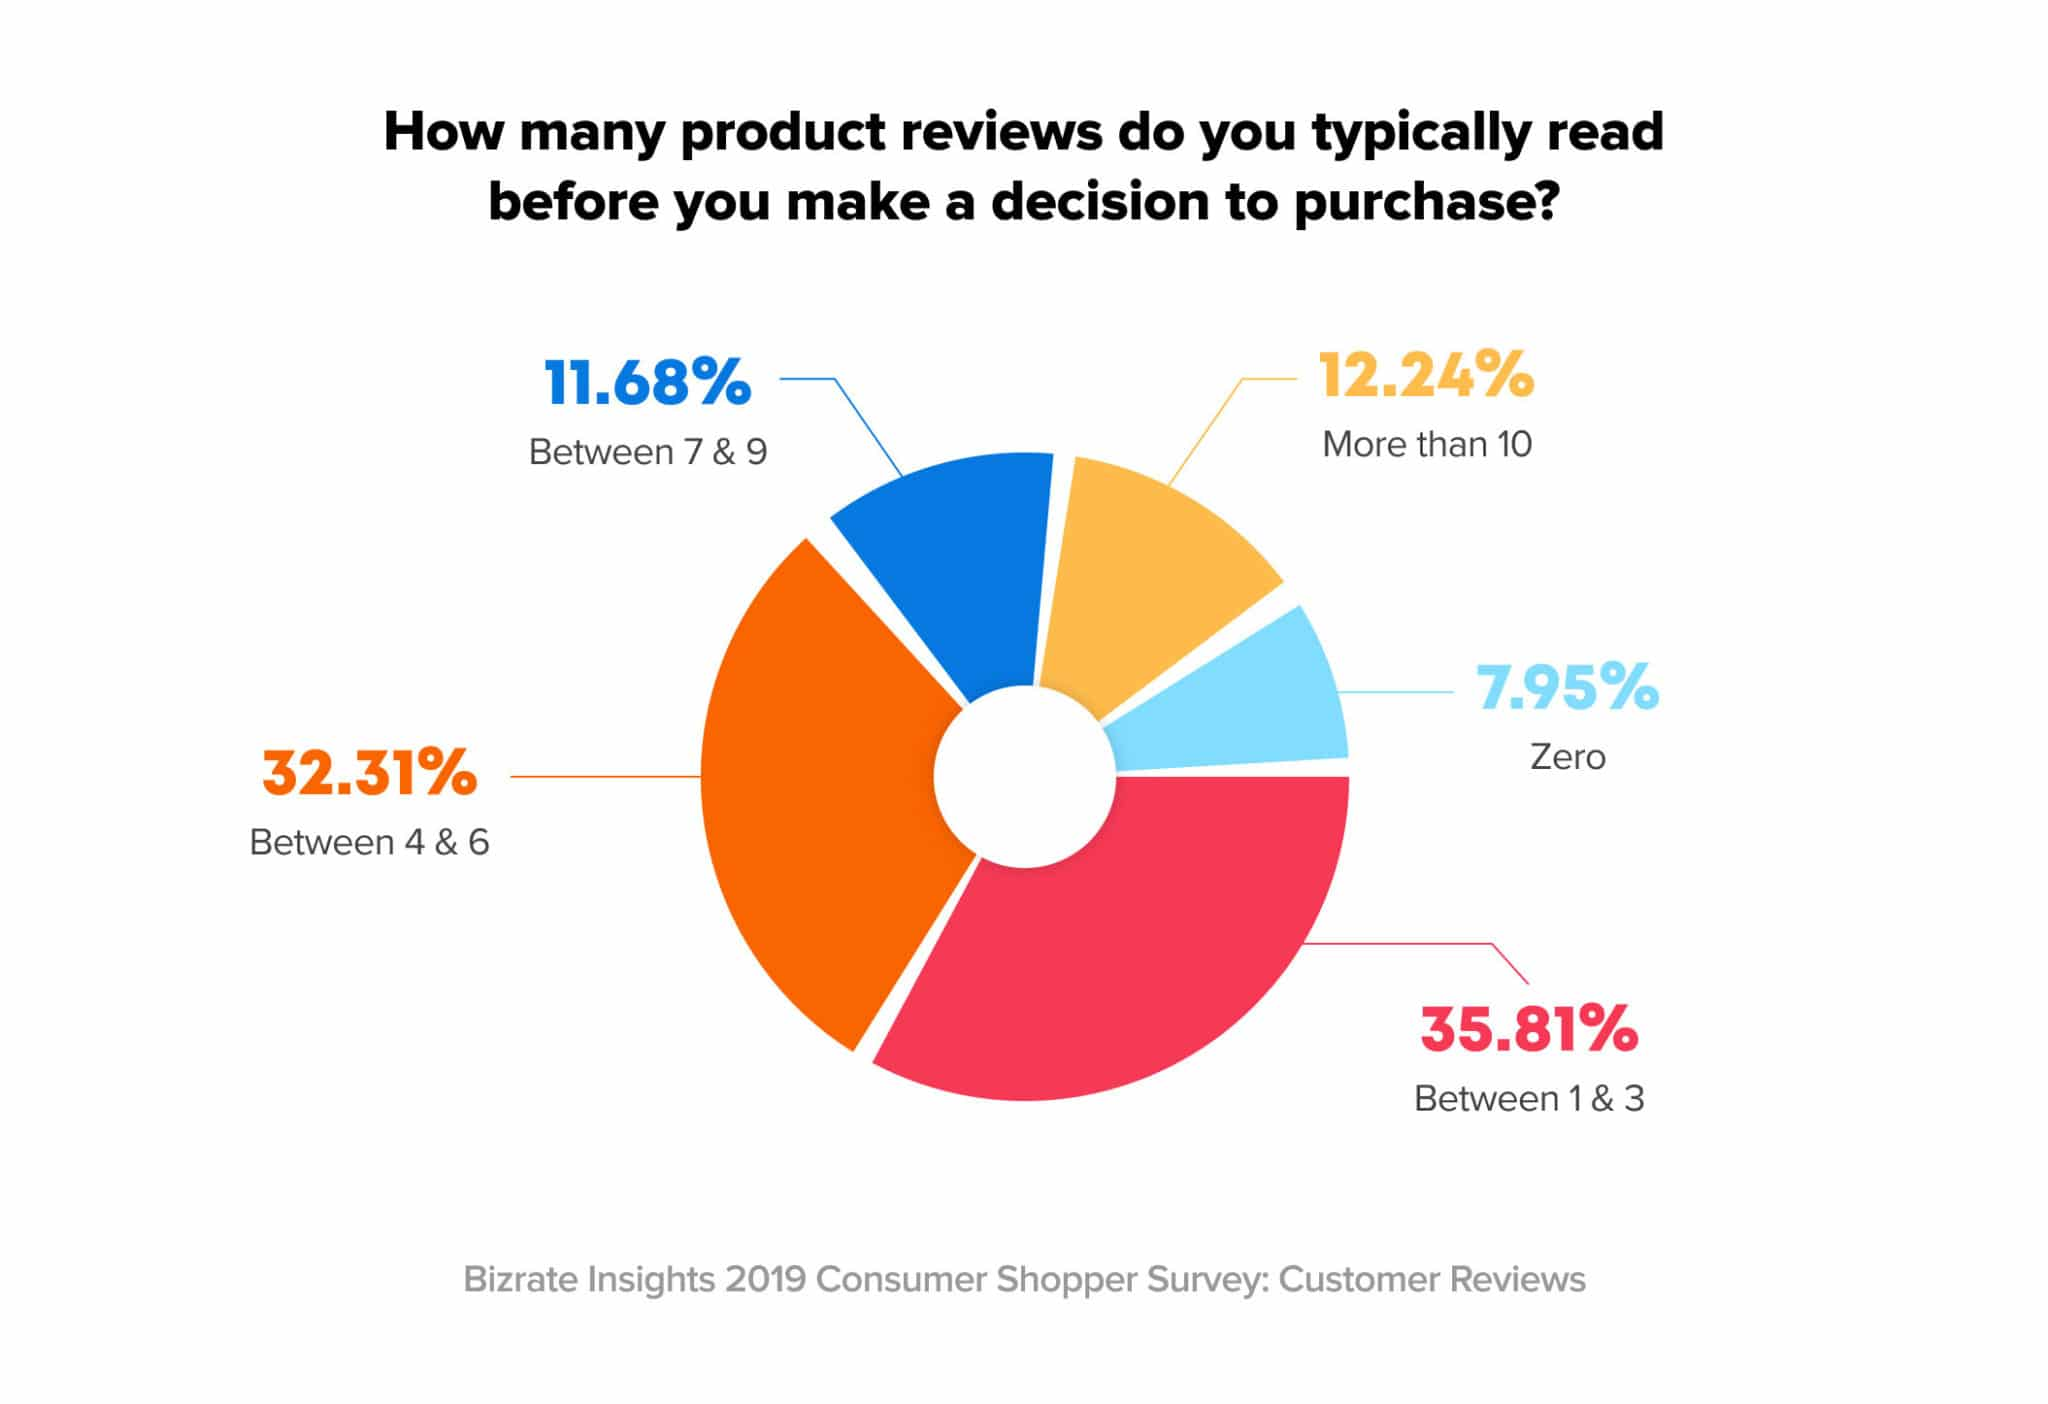 How many people read product reviews before making a purchase online